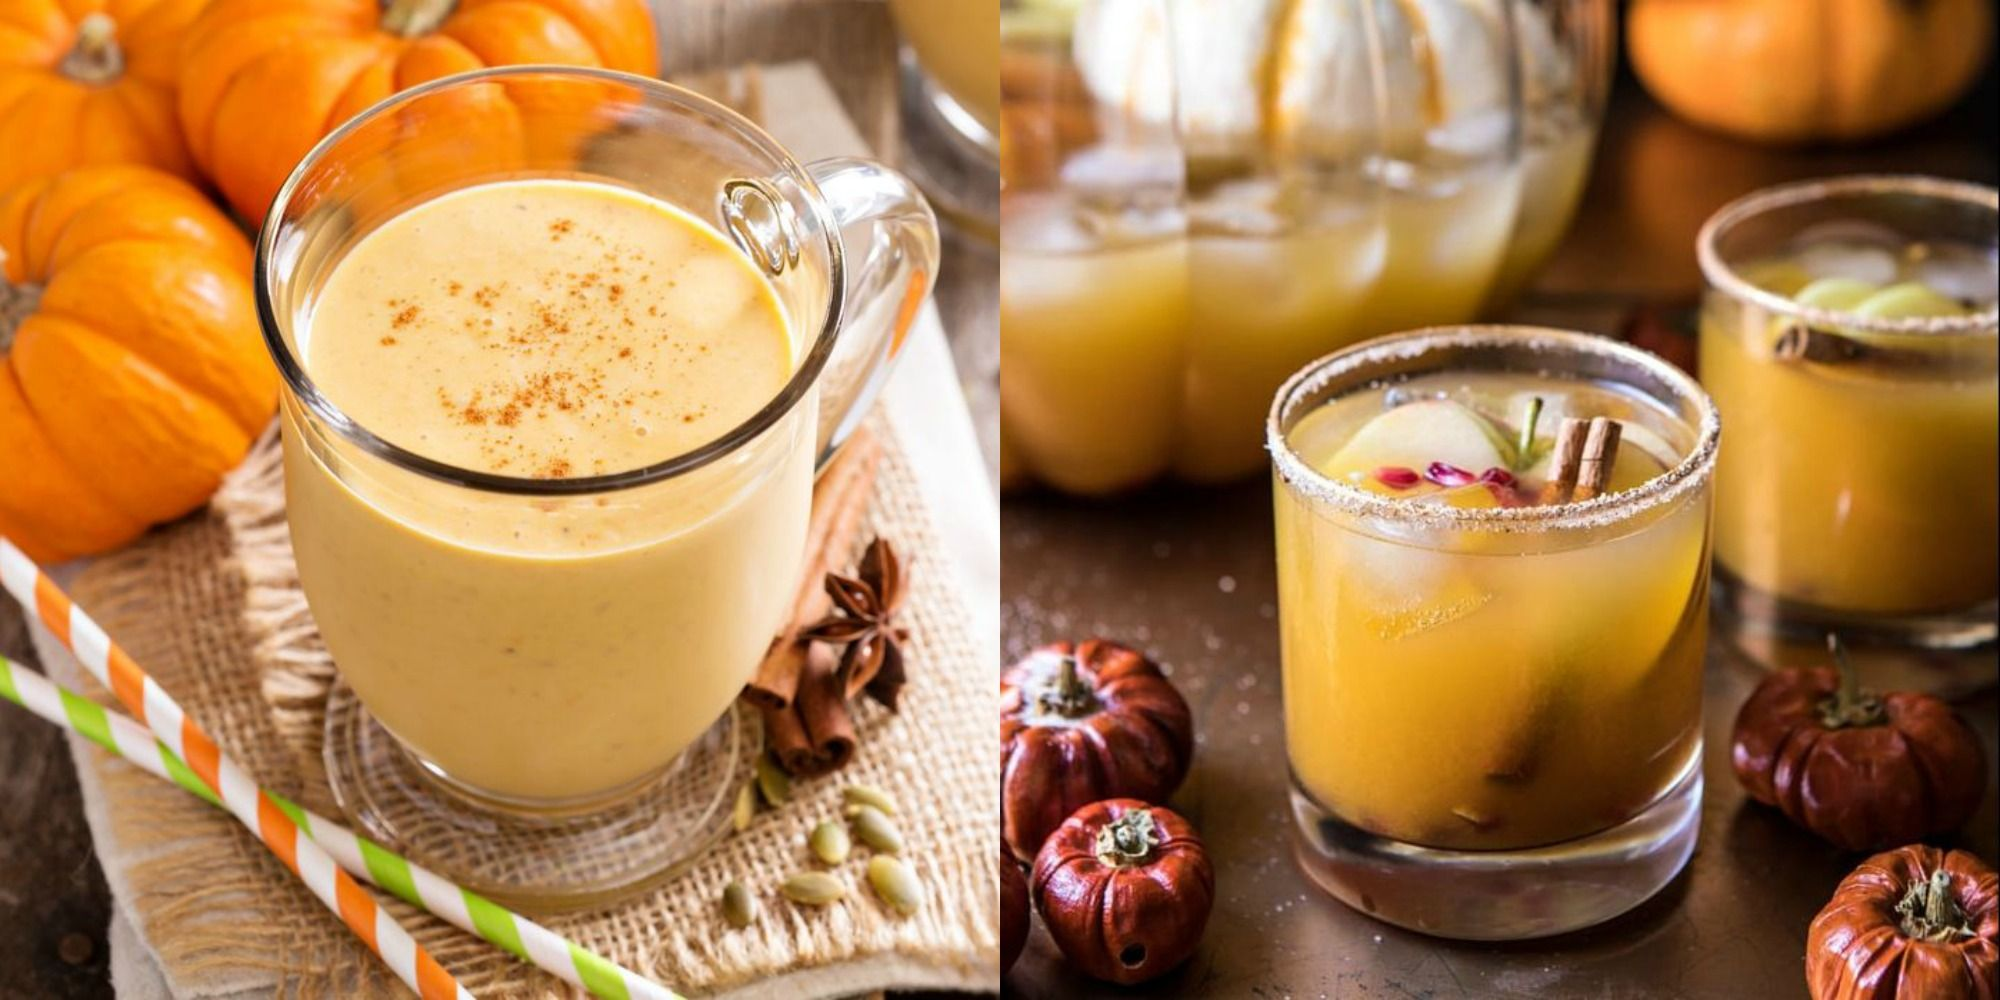 15 Pumpkin Drinks That Are So Much Better Than a Pumpkin Spice Latte